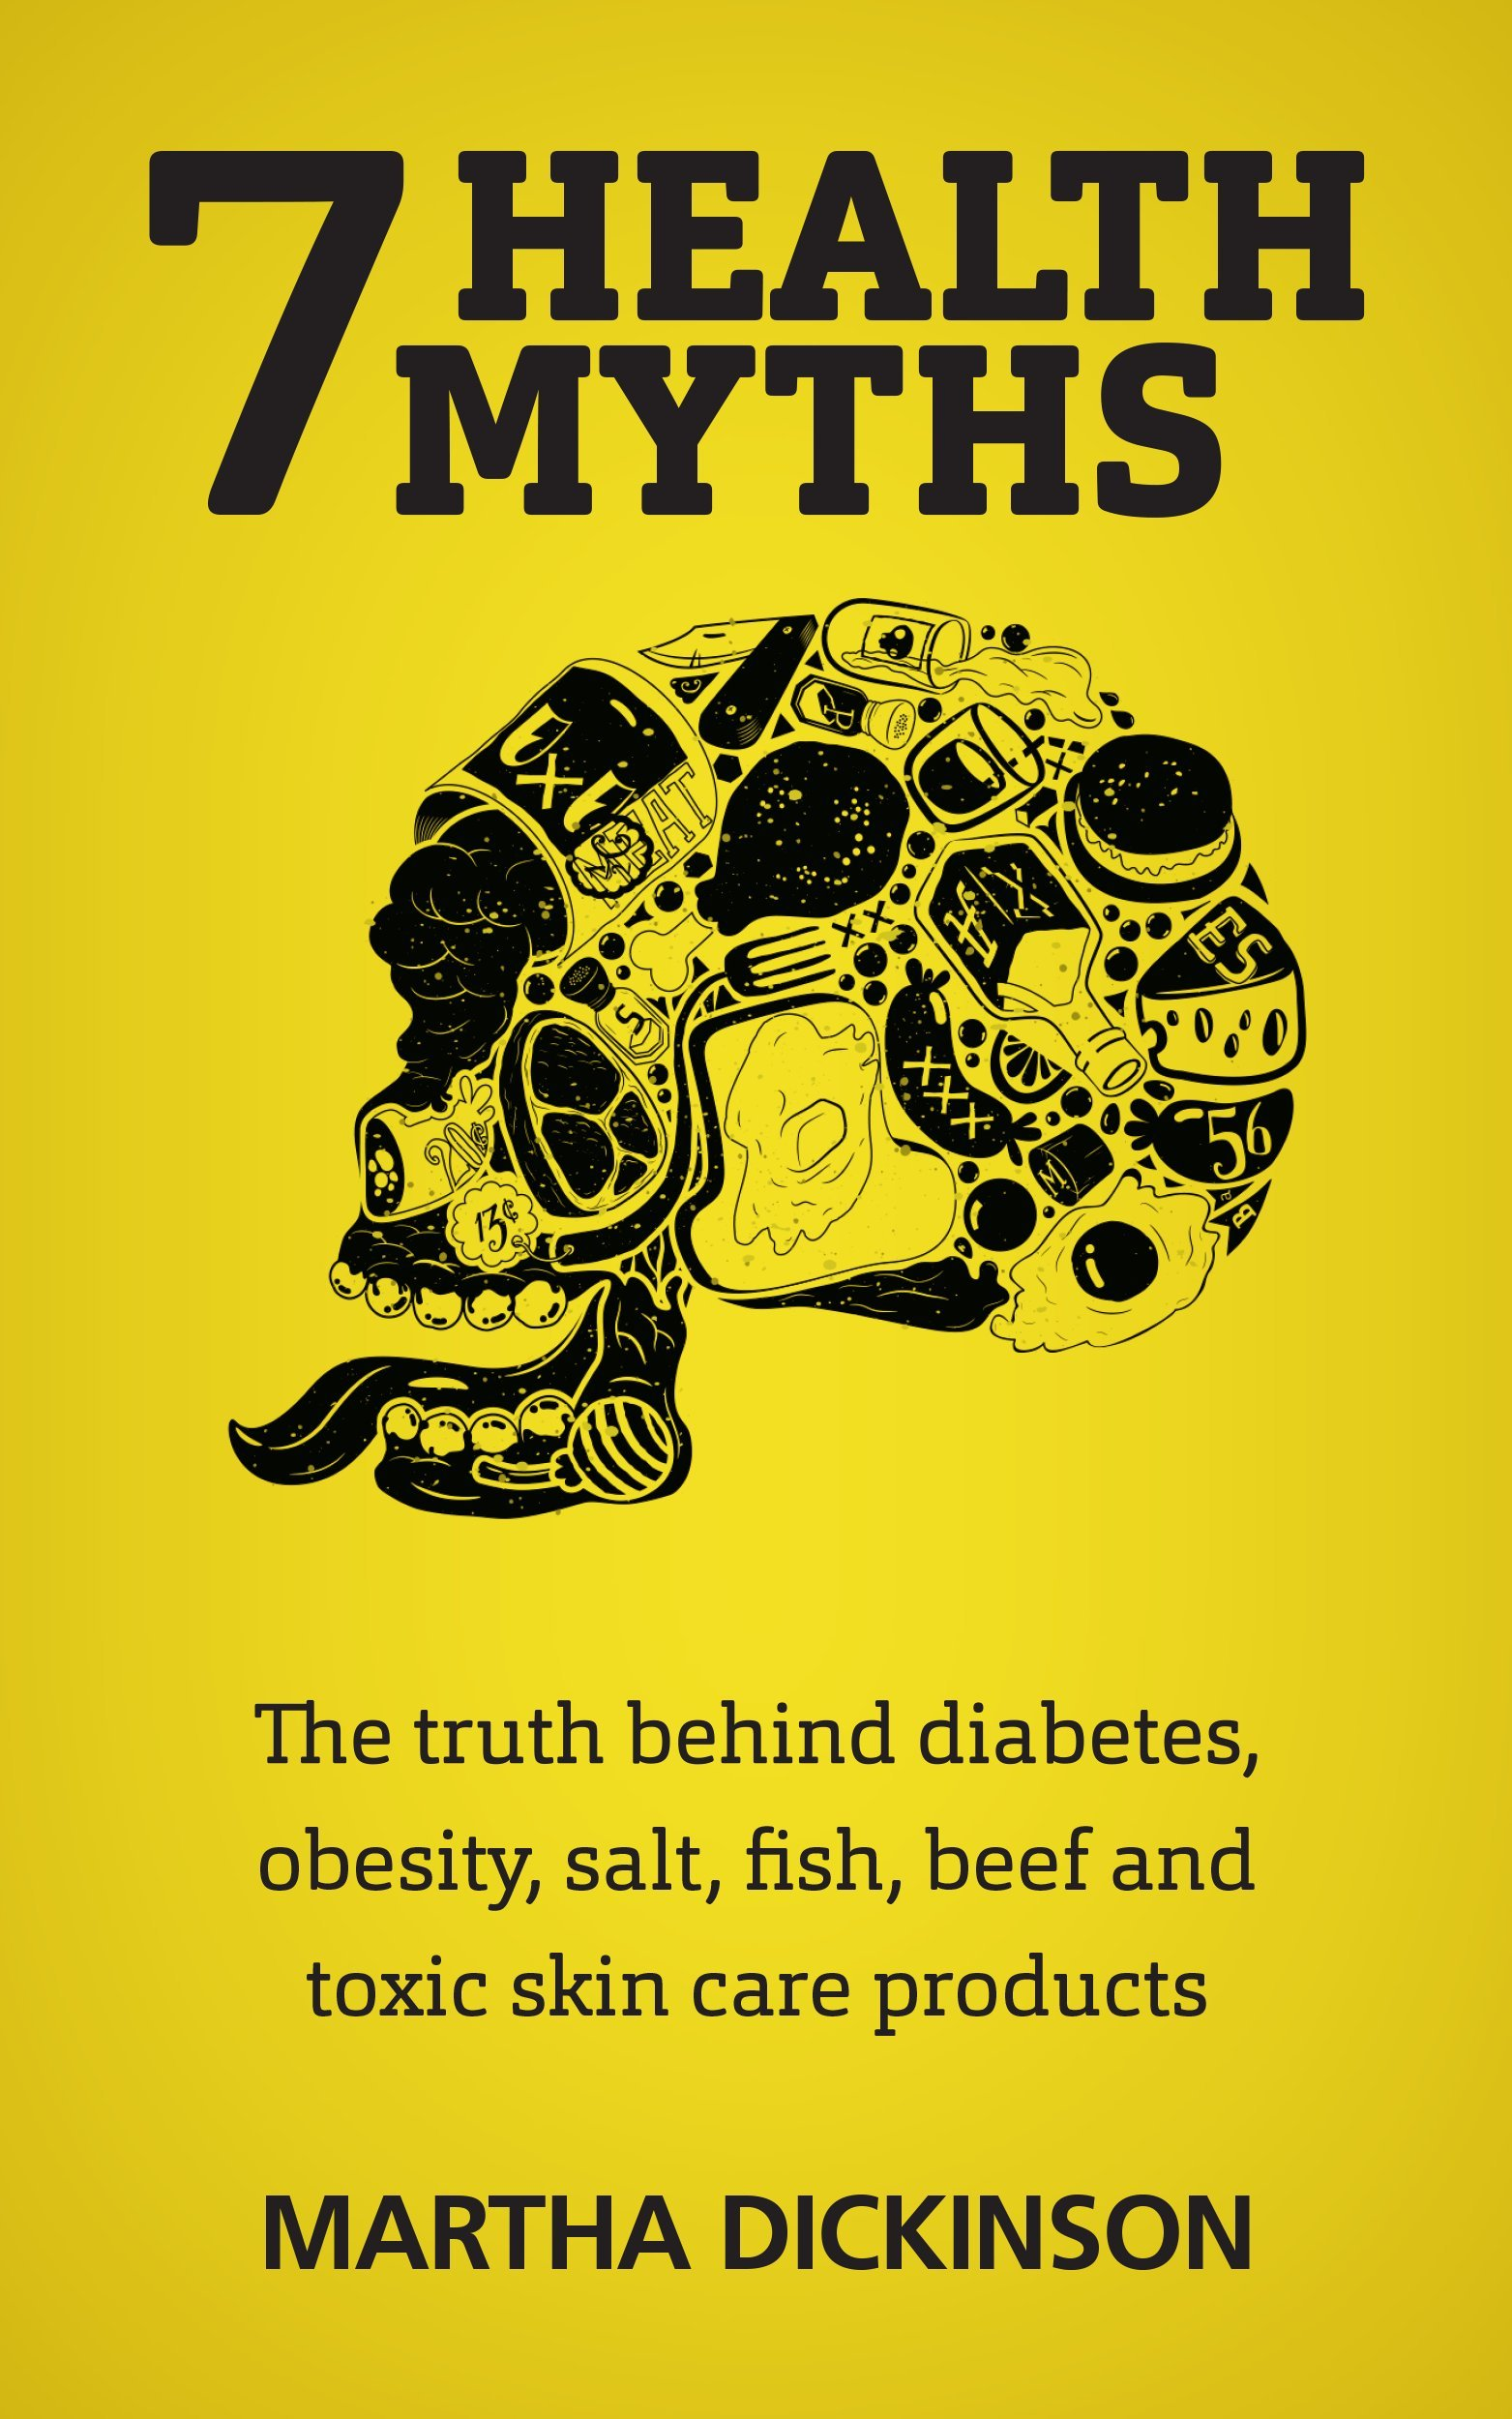 7 Health Myths: The Truth Behind Diabetes Obesity Salt Fish Beef and Toxic Skin Care Products. (English Edition)